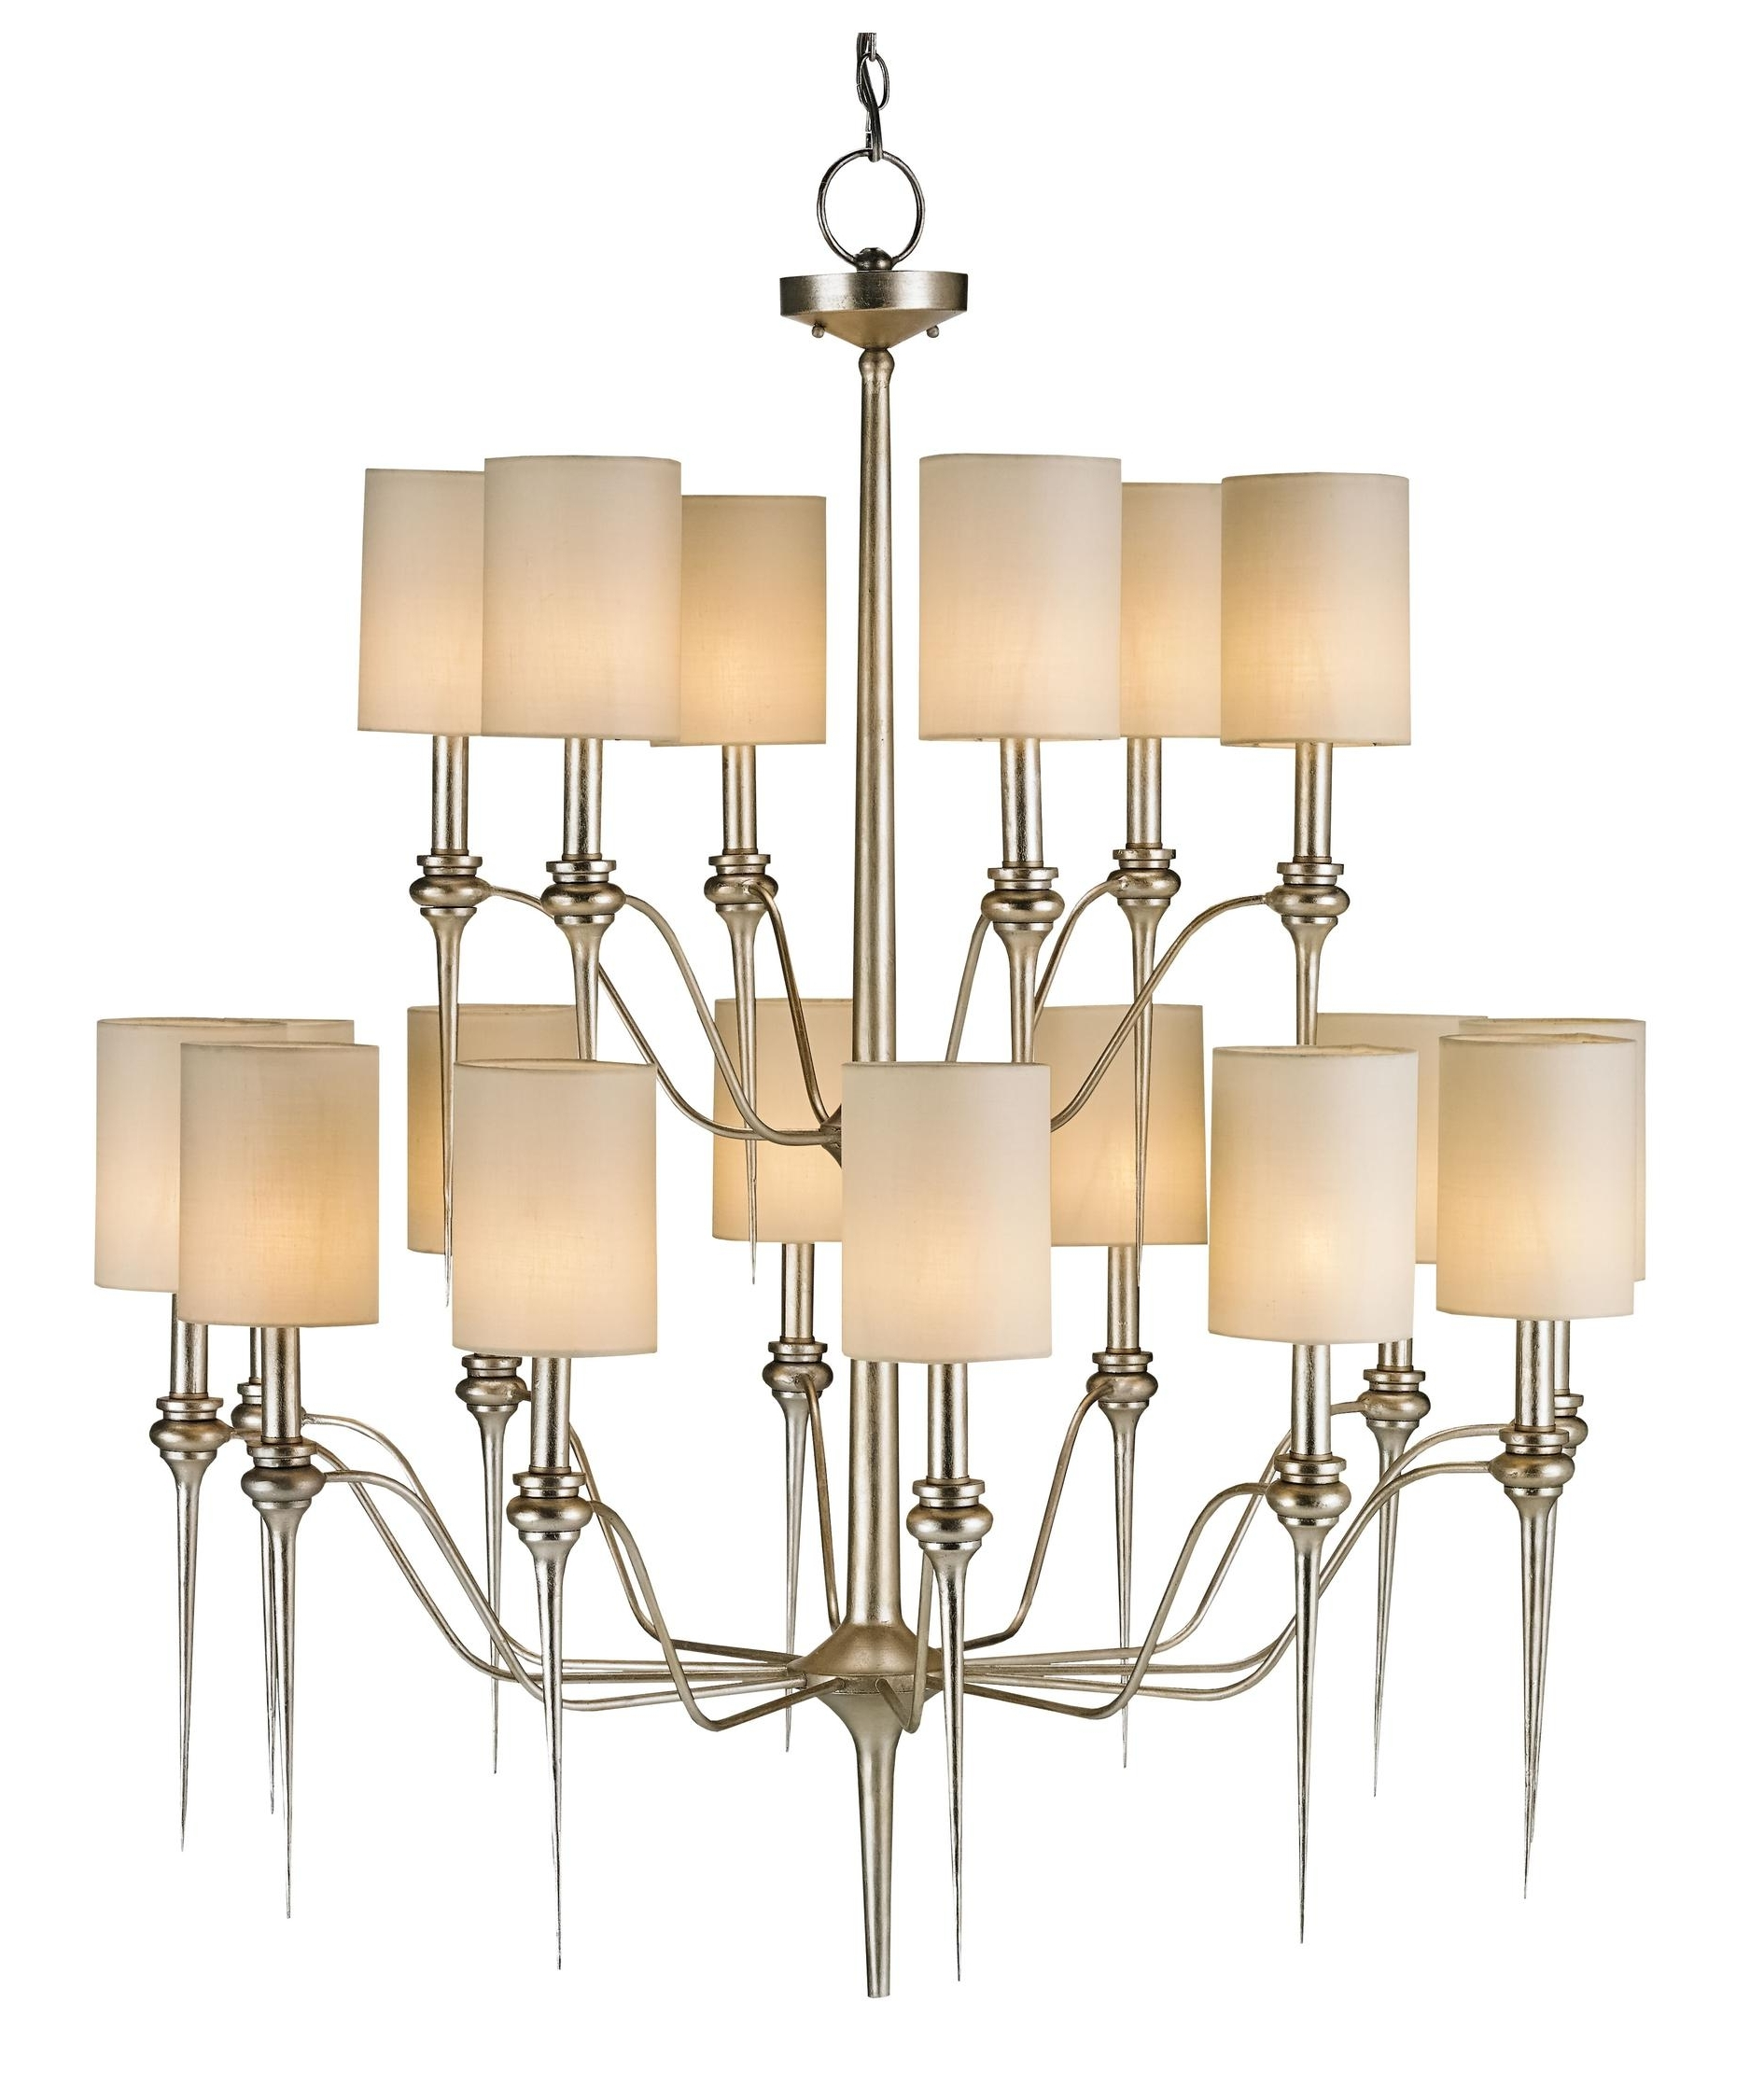 Currey And Company 9807 Chaddbury 43 Inch Large Foyer Chandelier Within 2018 Modern Silver Chandelier (View 12 of 20)